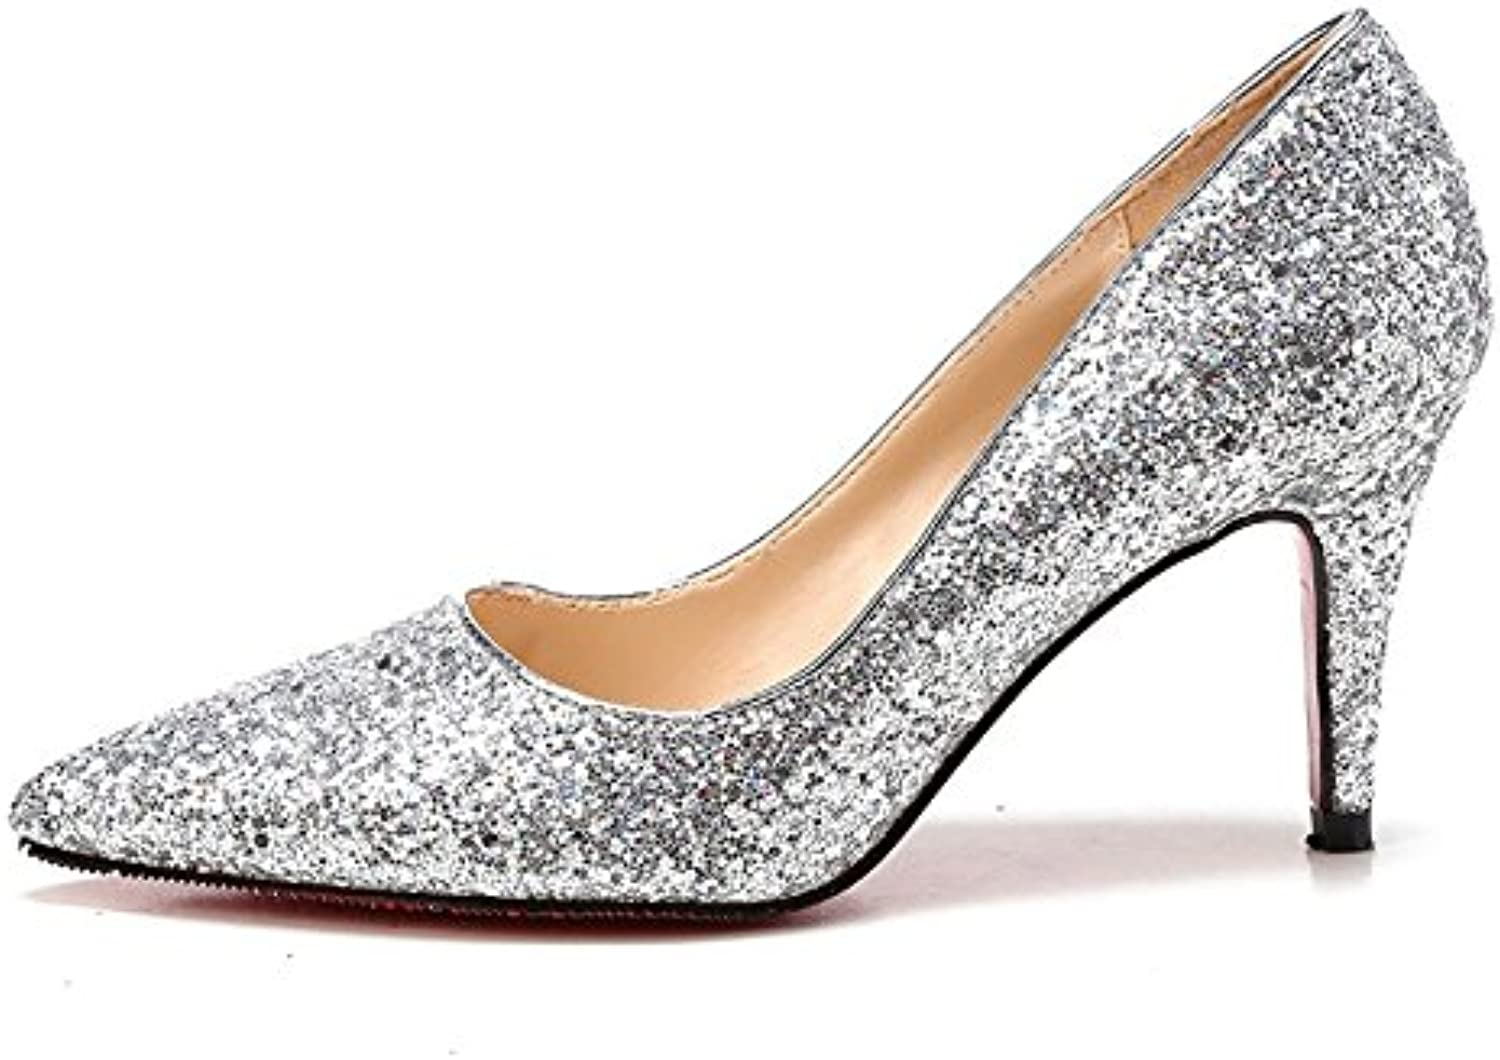 fd9d8e12b8f4 Women s Silver Sequin Sequin Sequin High Heels Bridal Wedding Shoes Crystal  Shoes B07CWTDDLF Parent 885396